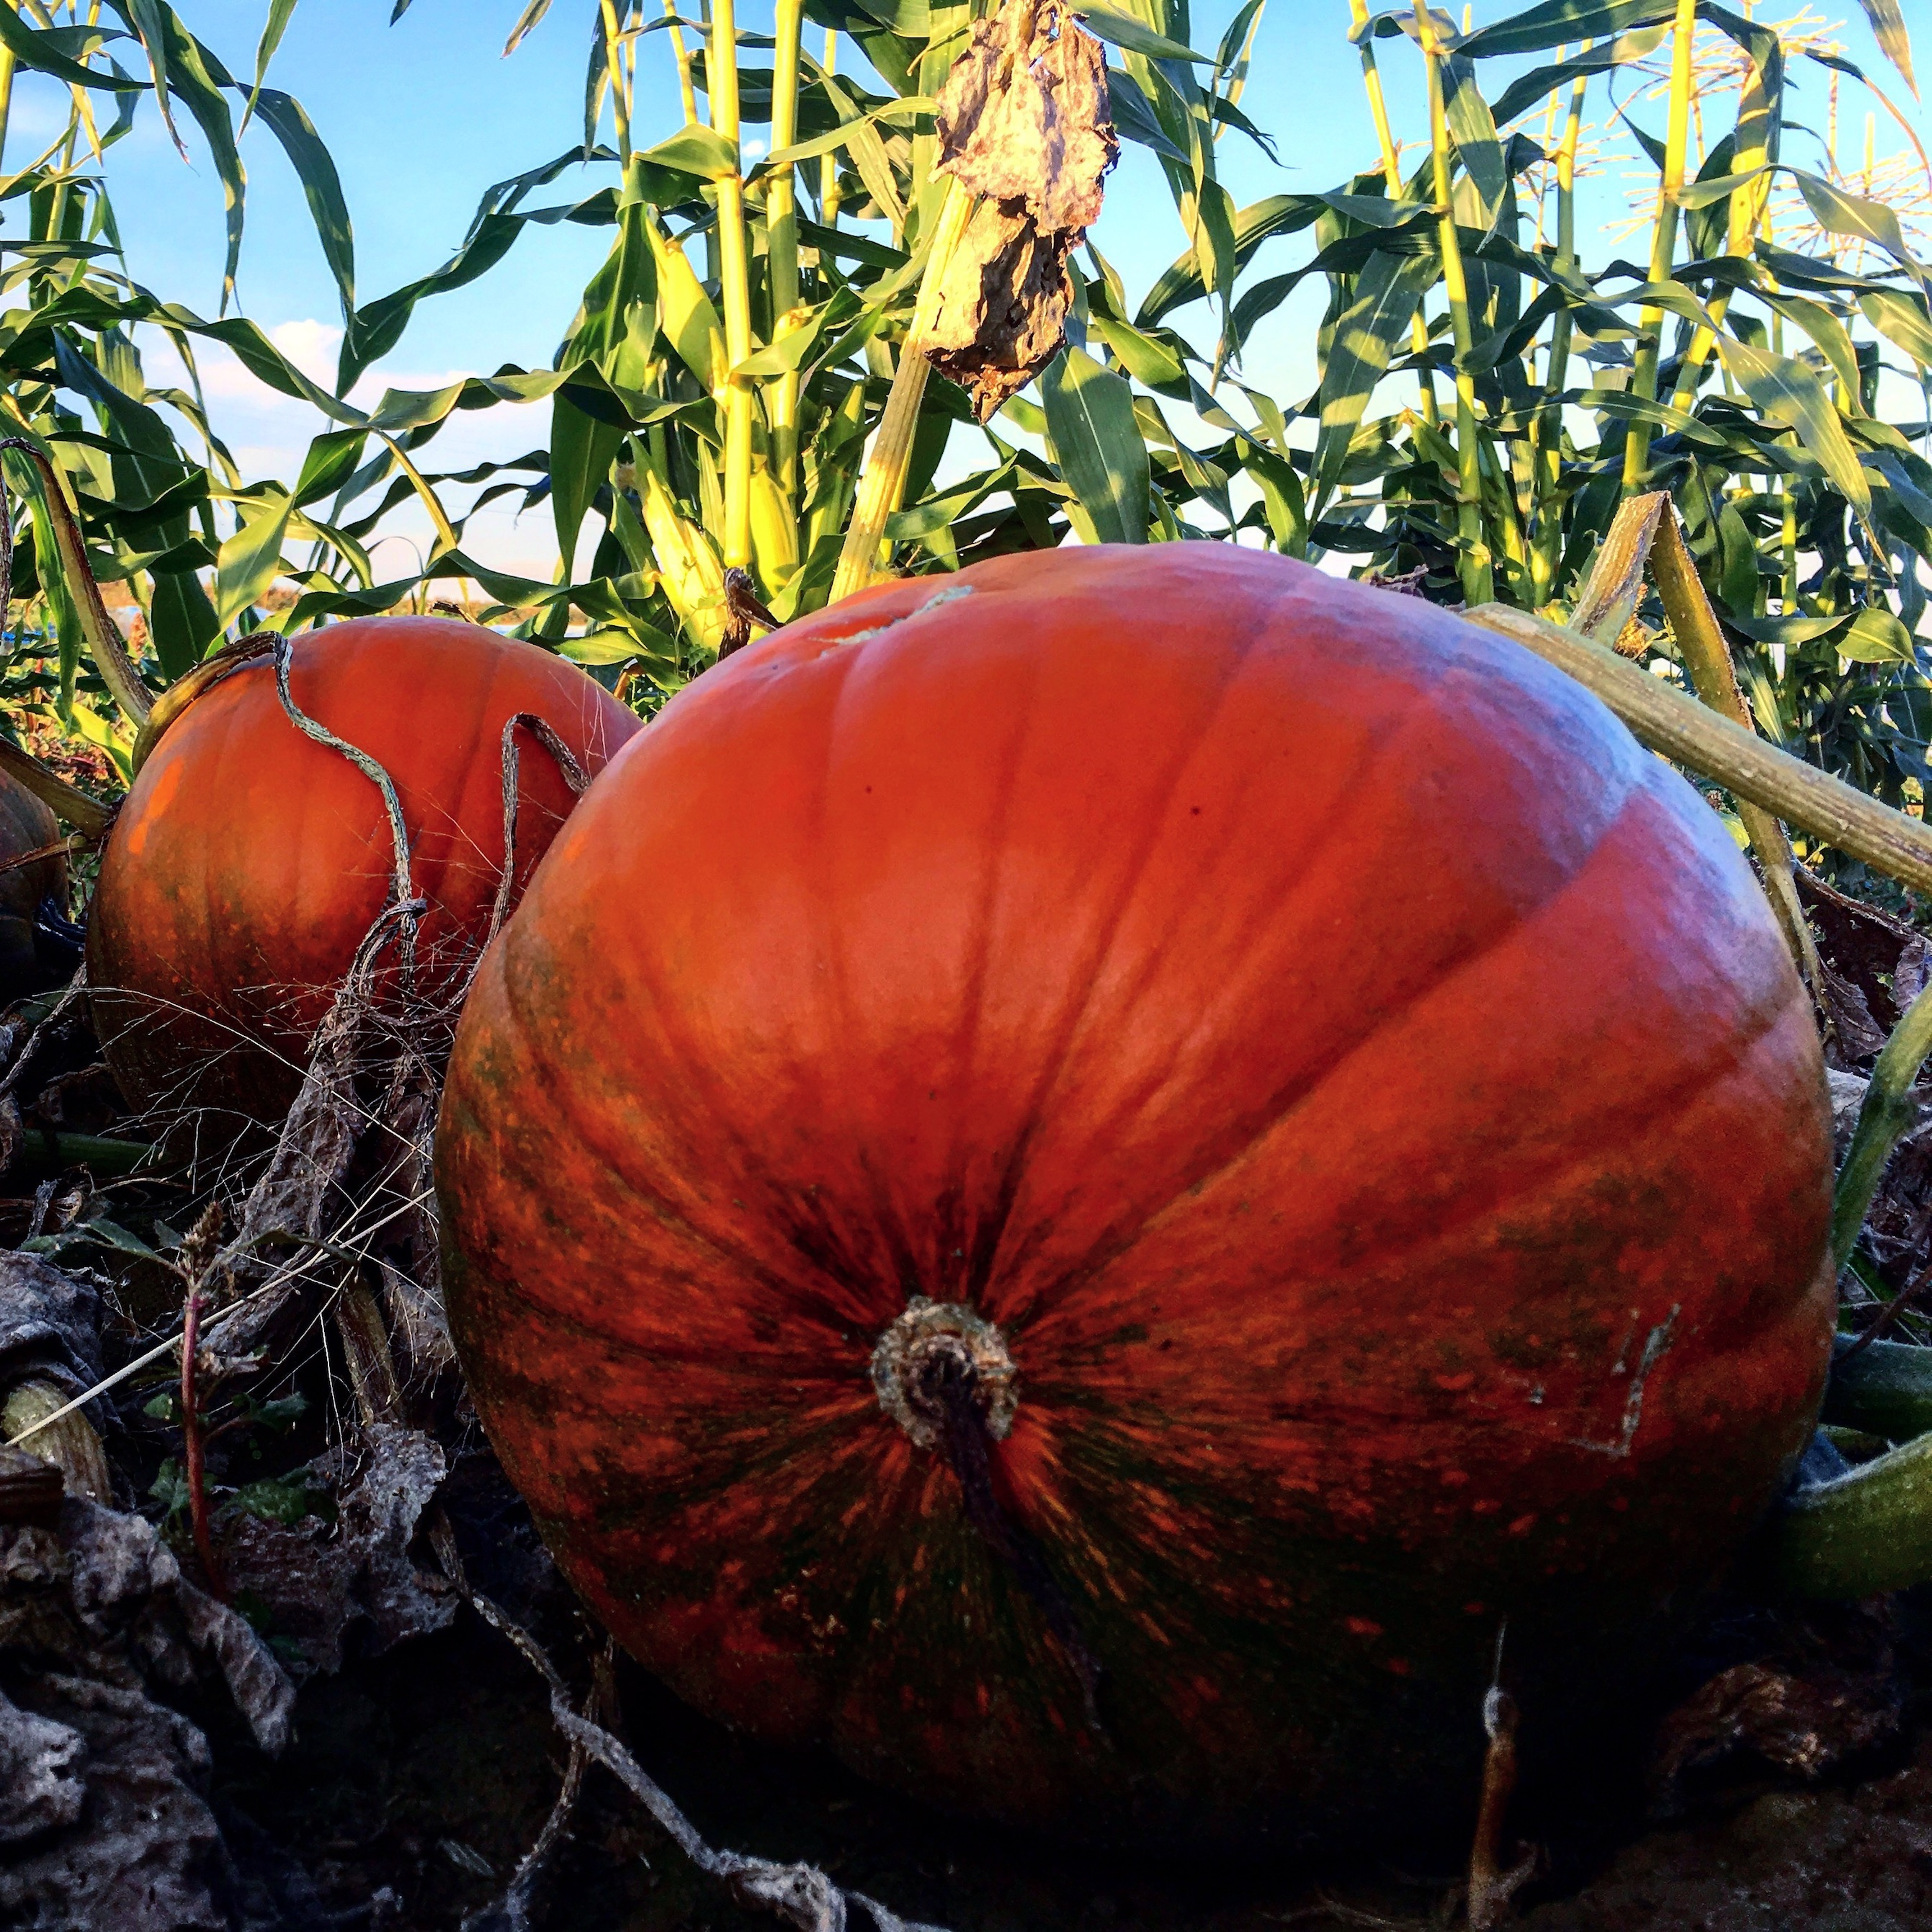 Pumpkins and corn. You can say goodbye to fresh, local corn for the year next week, but pumpkins will be available for months.